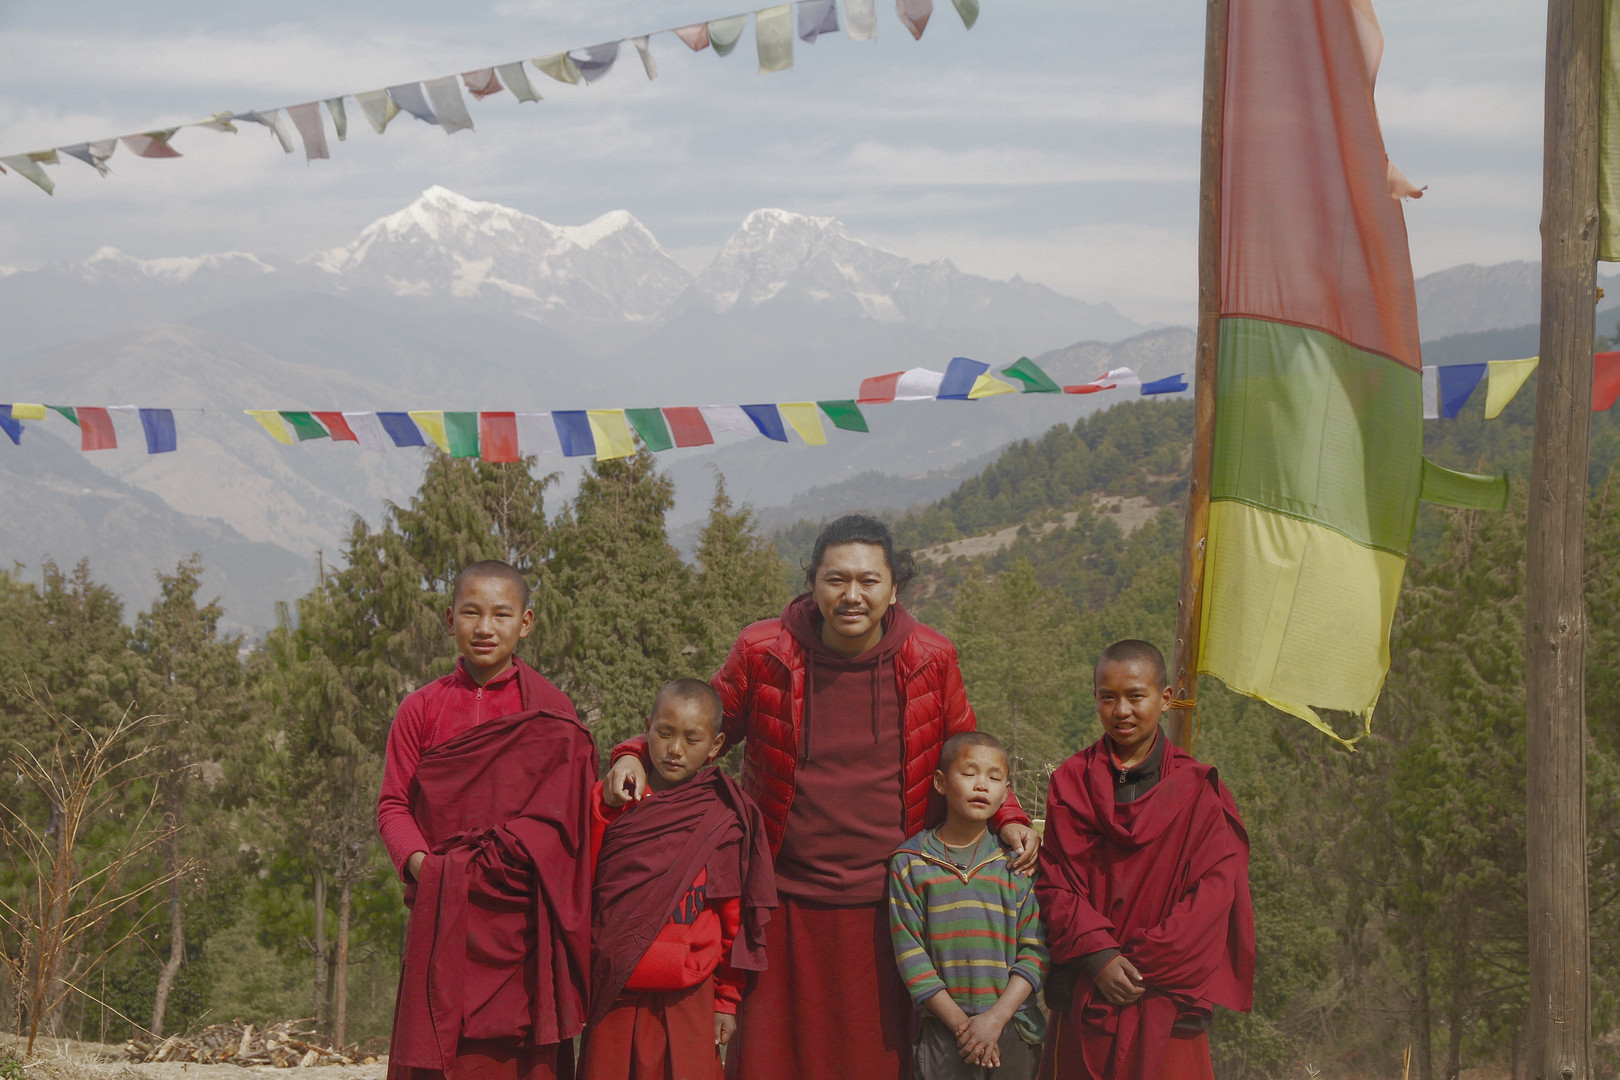 Rinpoche with little monks